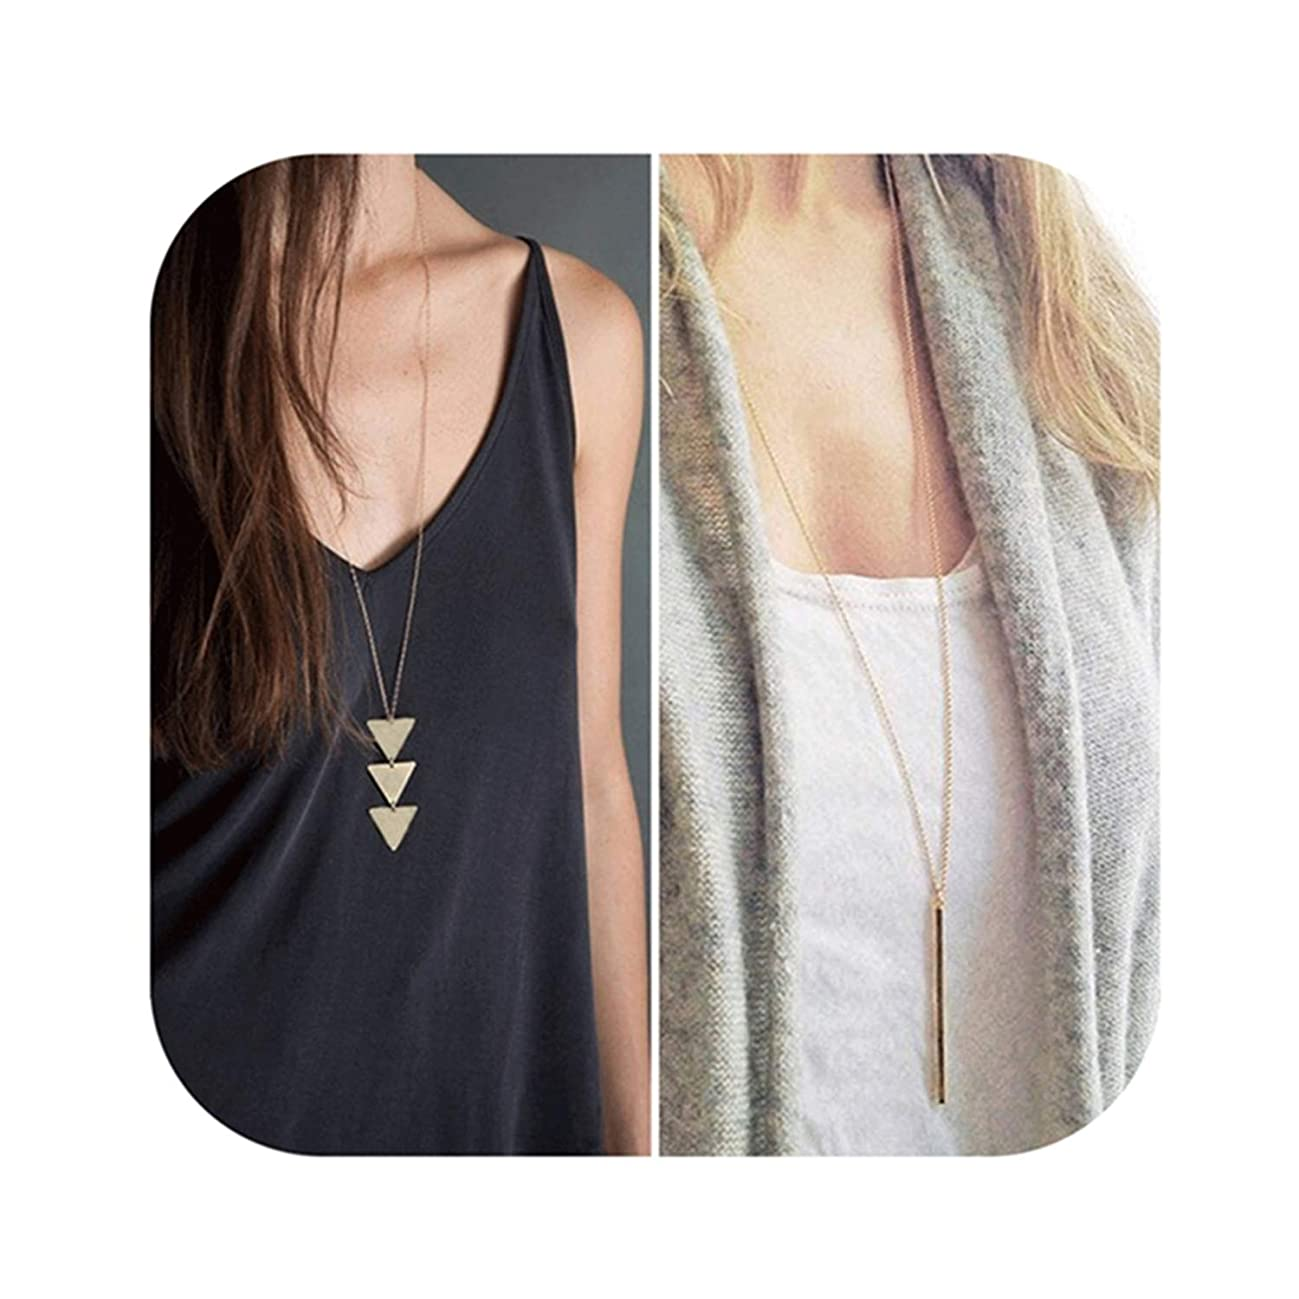 Defiro 2PCS Y Layer Simple Bar Pendant Necklace Center Long Lariat Chain for Women Jewelry